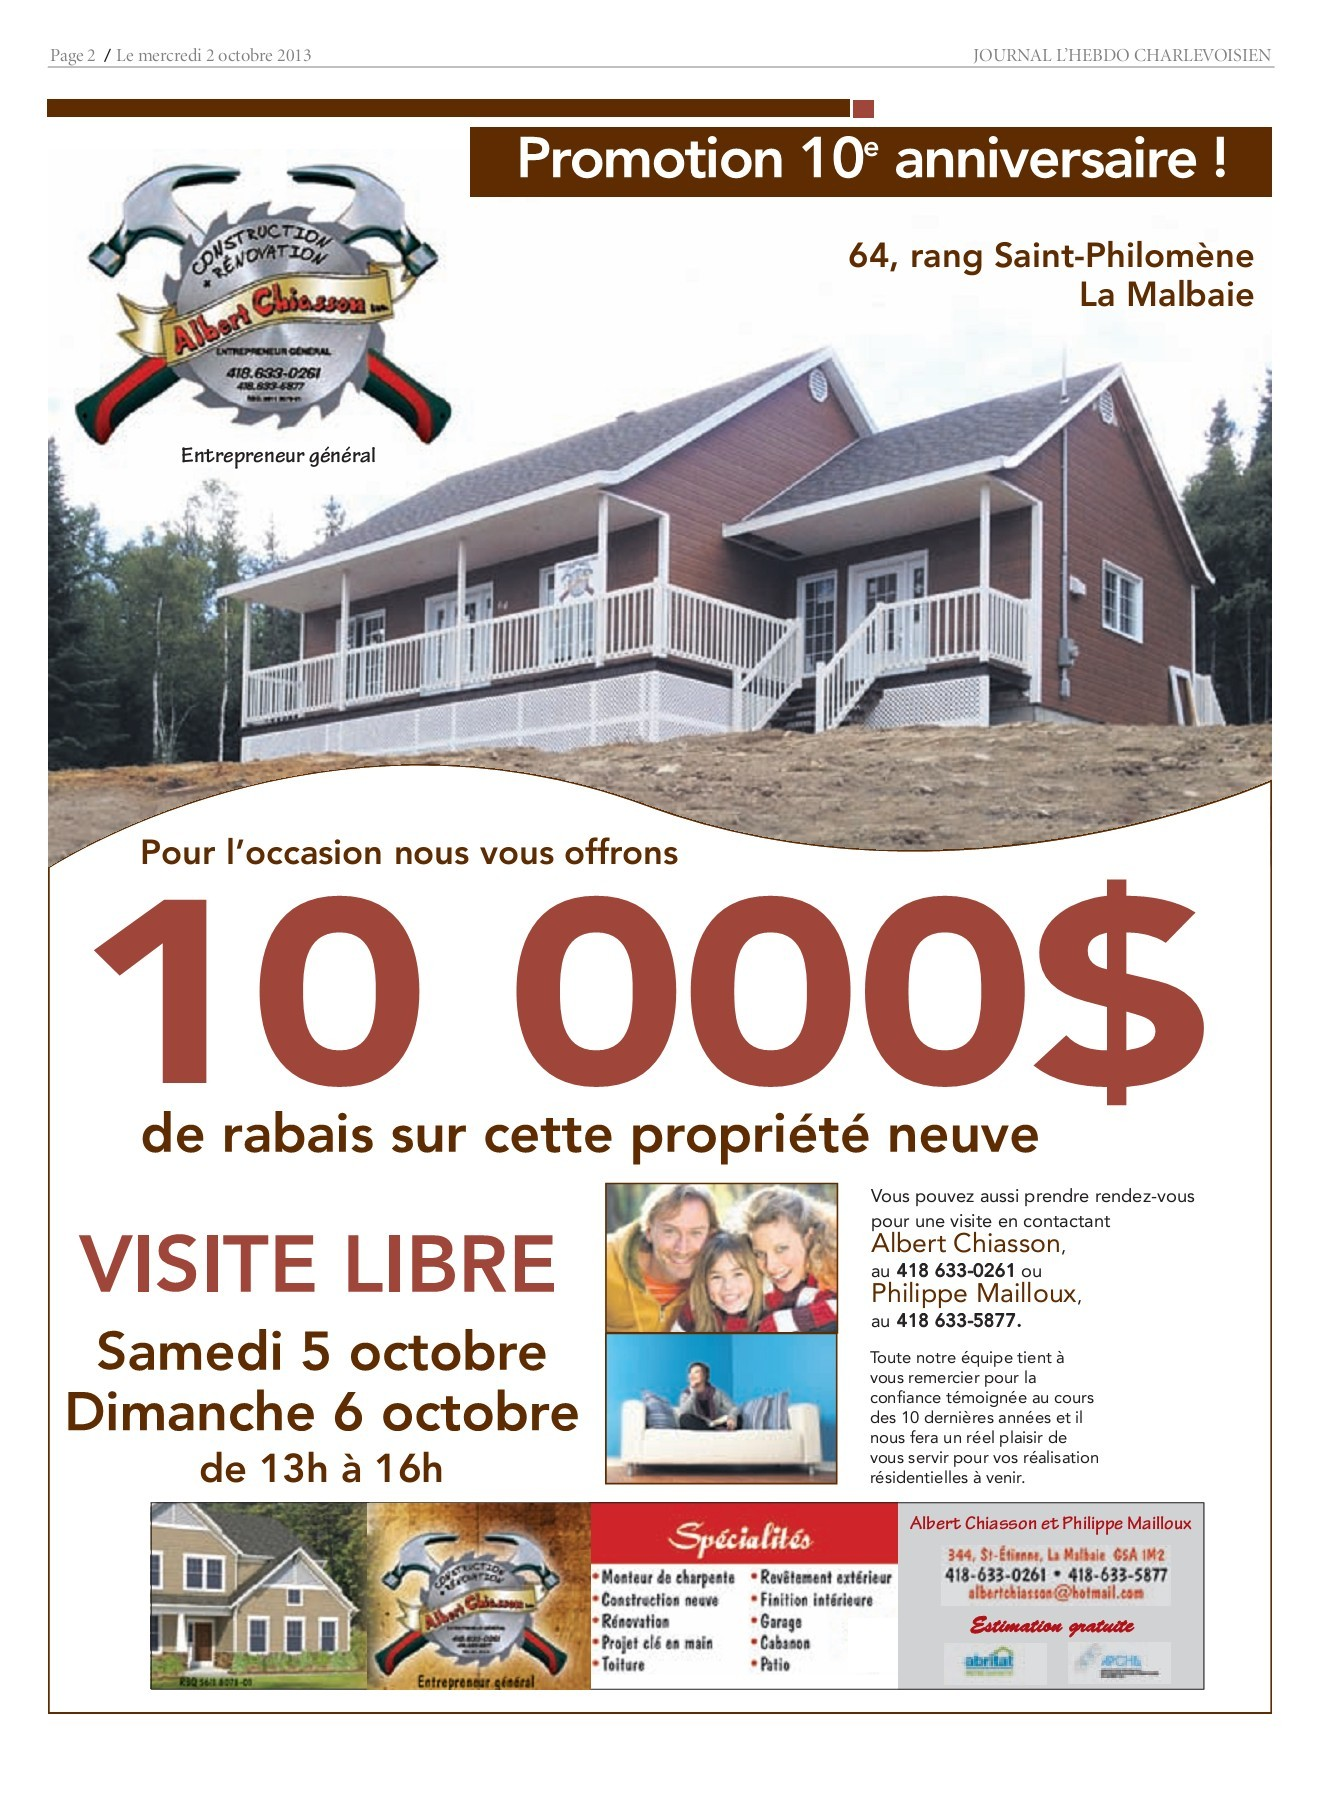 Le Charlevoisien 2 Octobre 2013 Pages 1 48 Flip Pdf Download Fliphtml5